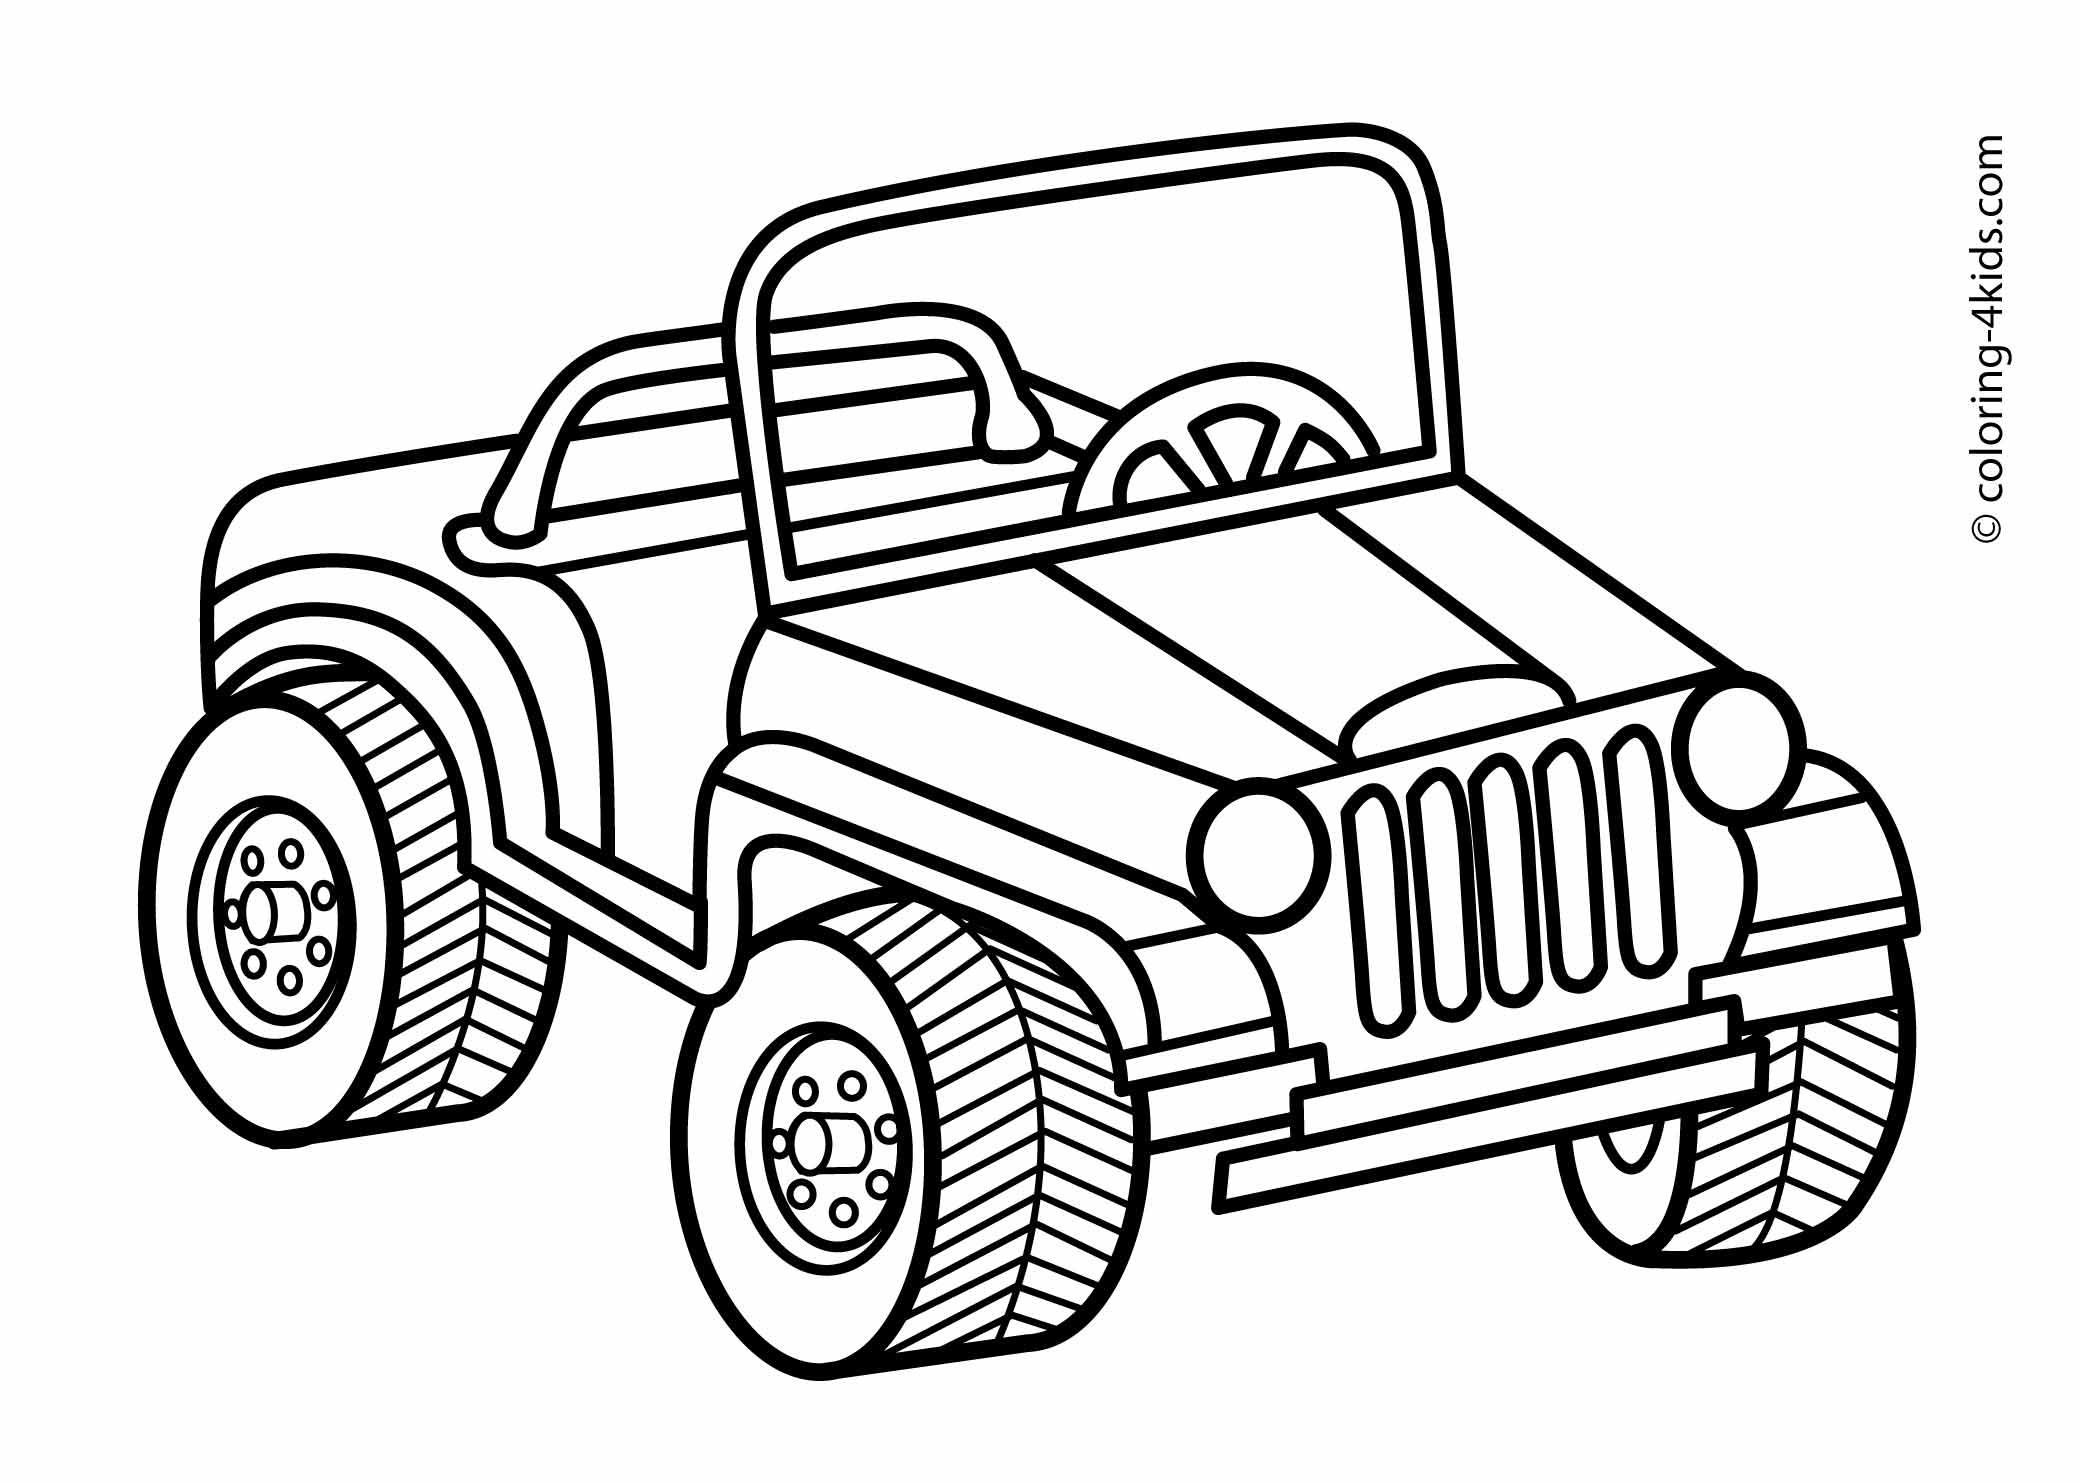 Jeep transportation coloring pages for kids, printable  Cars